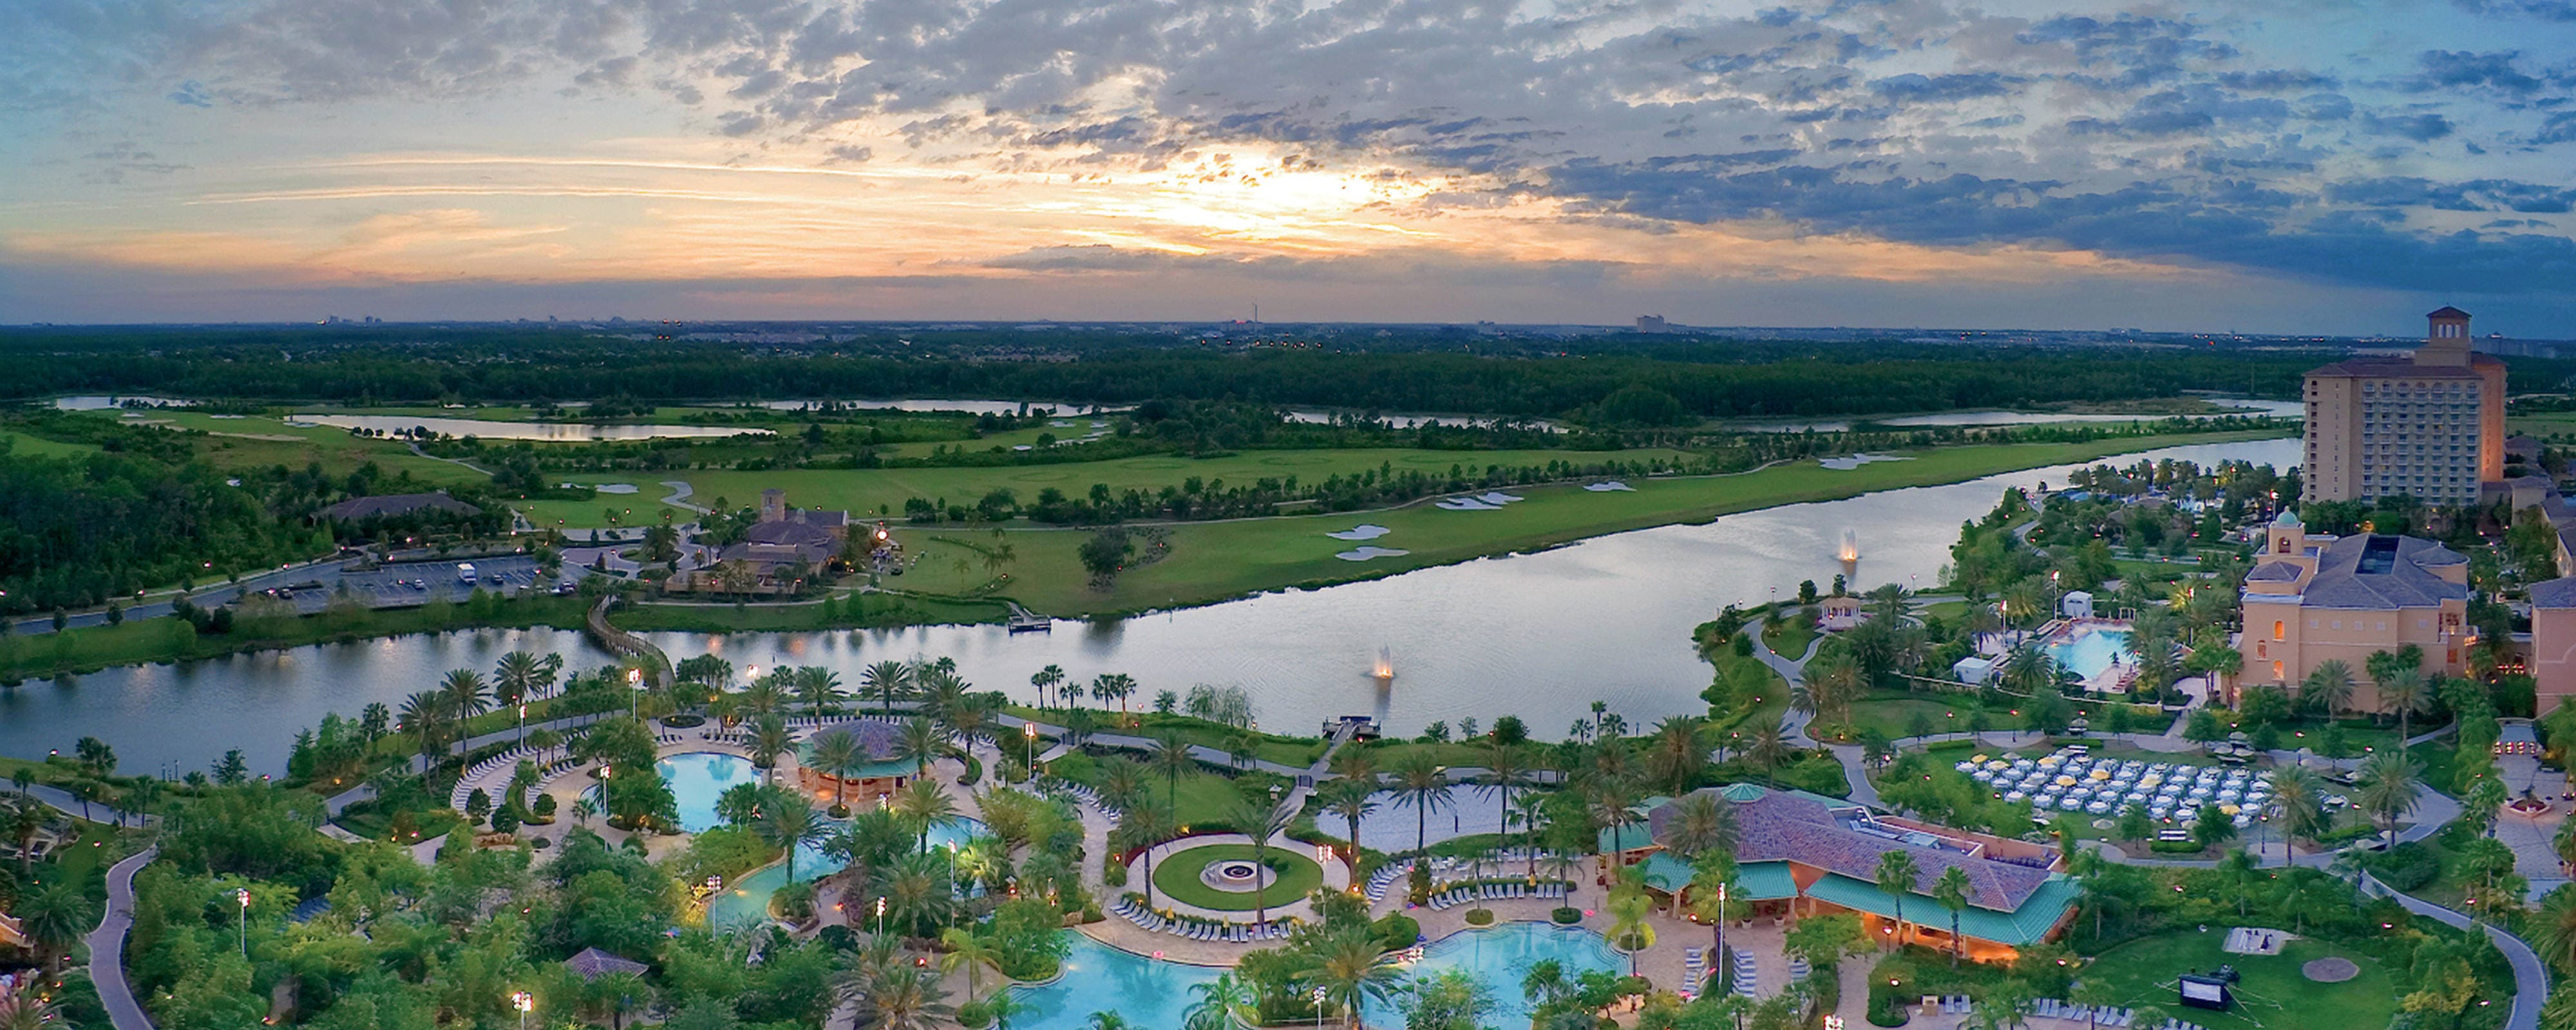 Jw Marriott Orlando Map Hotel on Central Florida Parkway in Orlando | JW Marriott Orlando